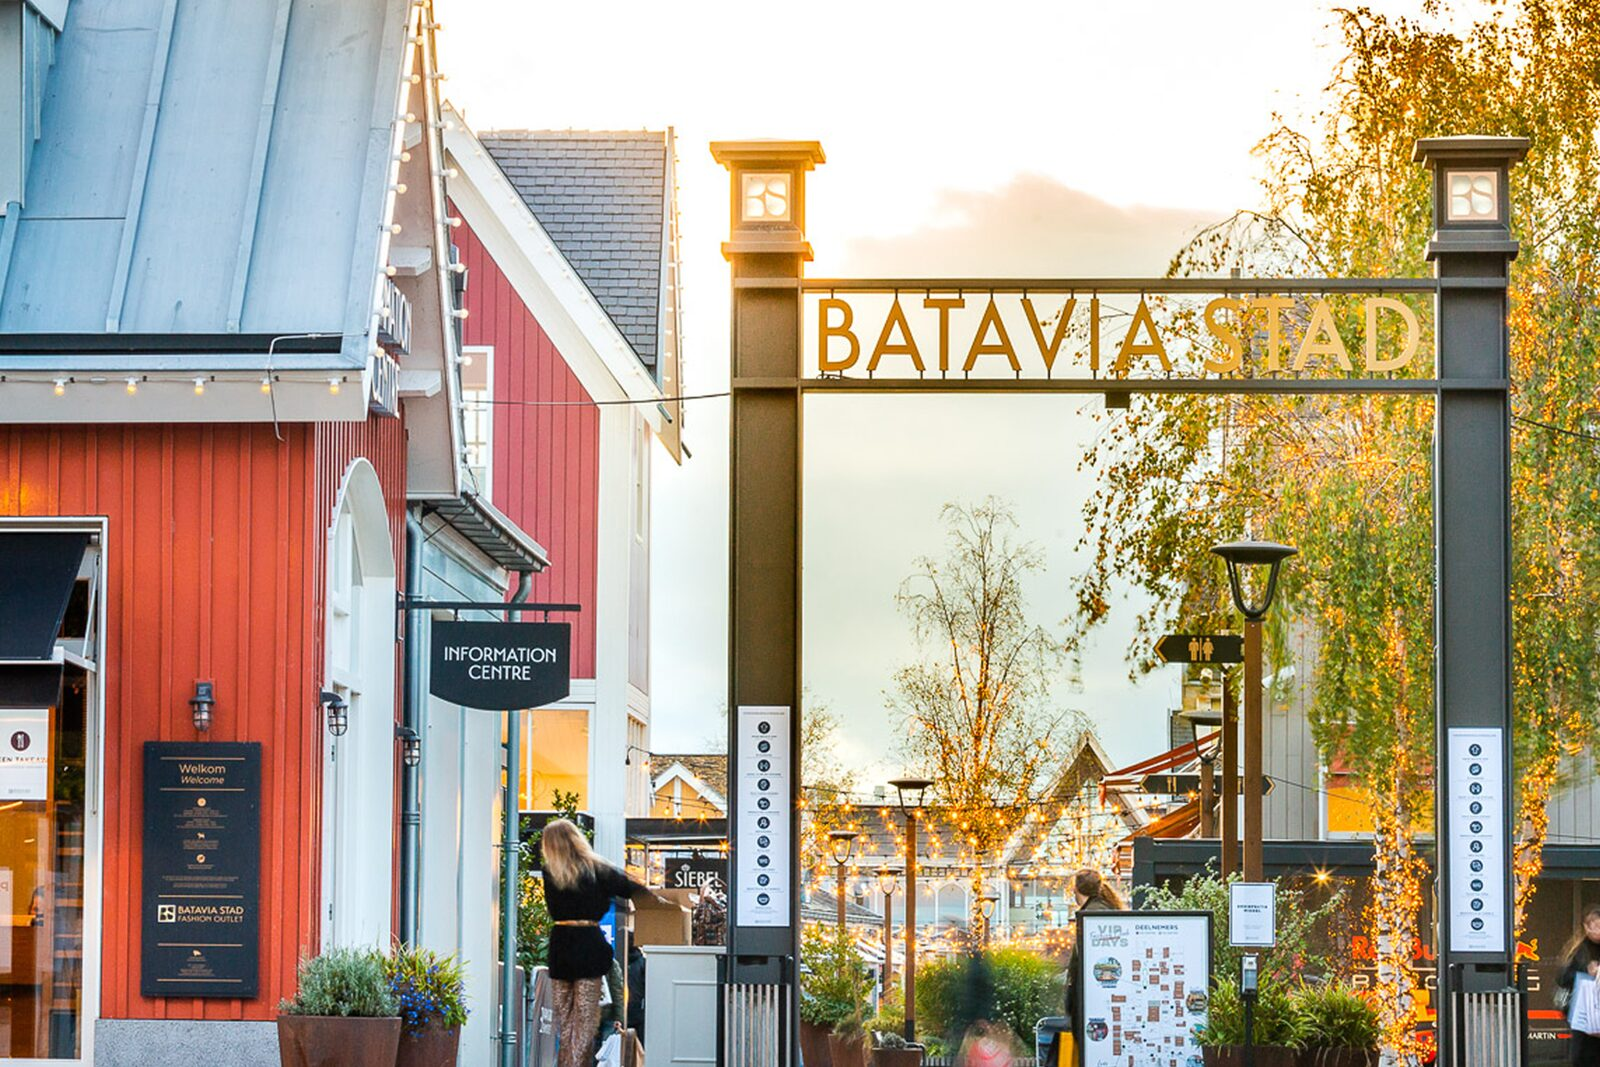 Batavia Stad Fashion Outlet – Lelystad